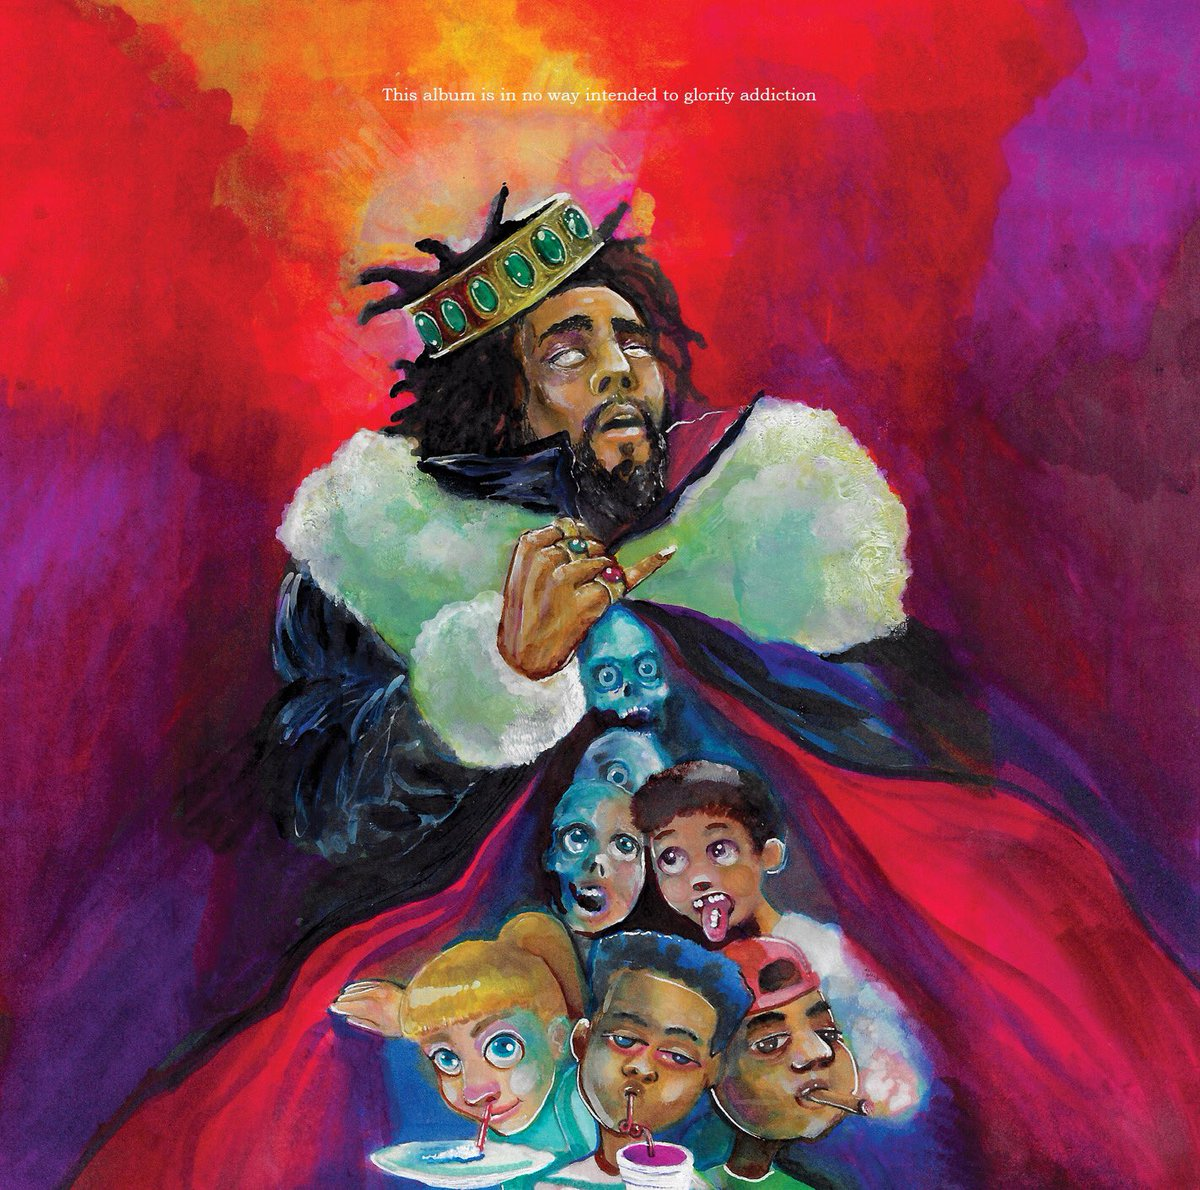 J. Cole announces New album KOD, dropping this Friday